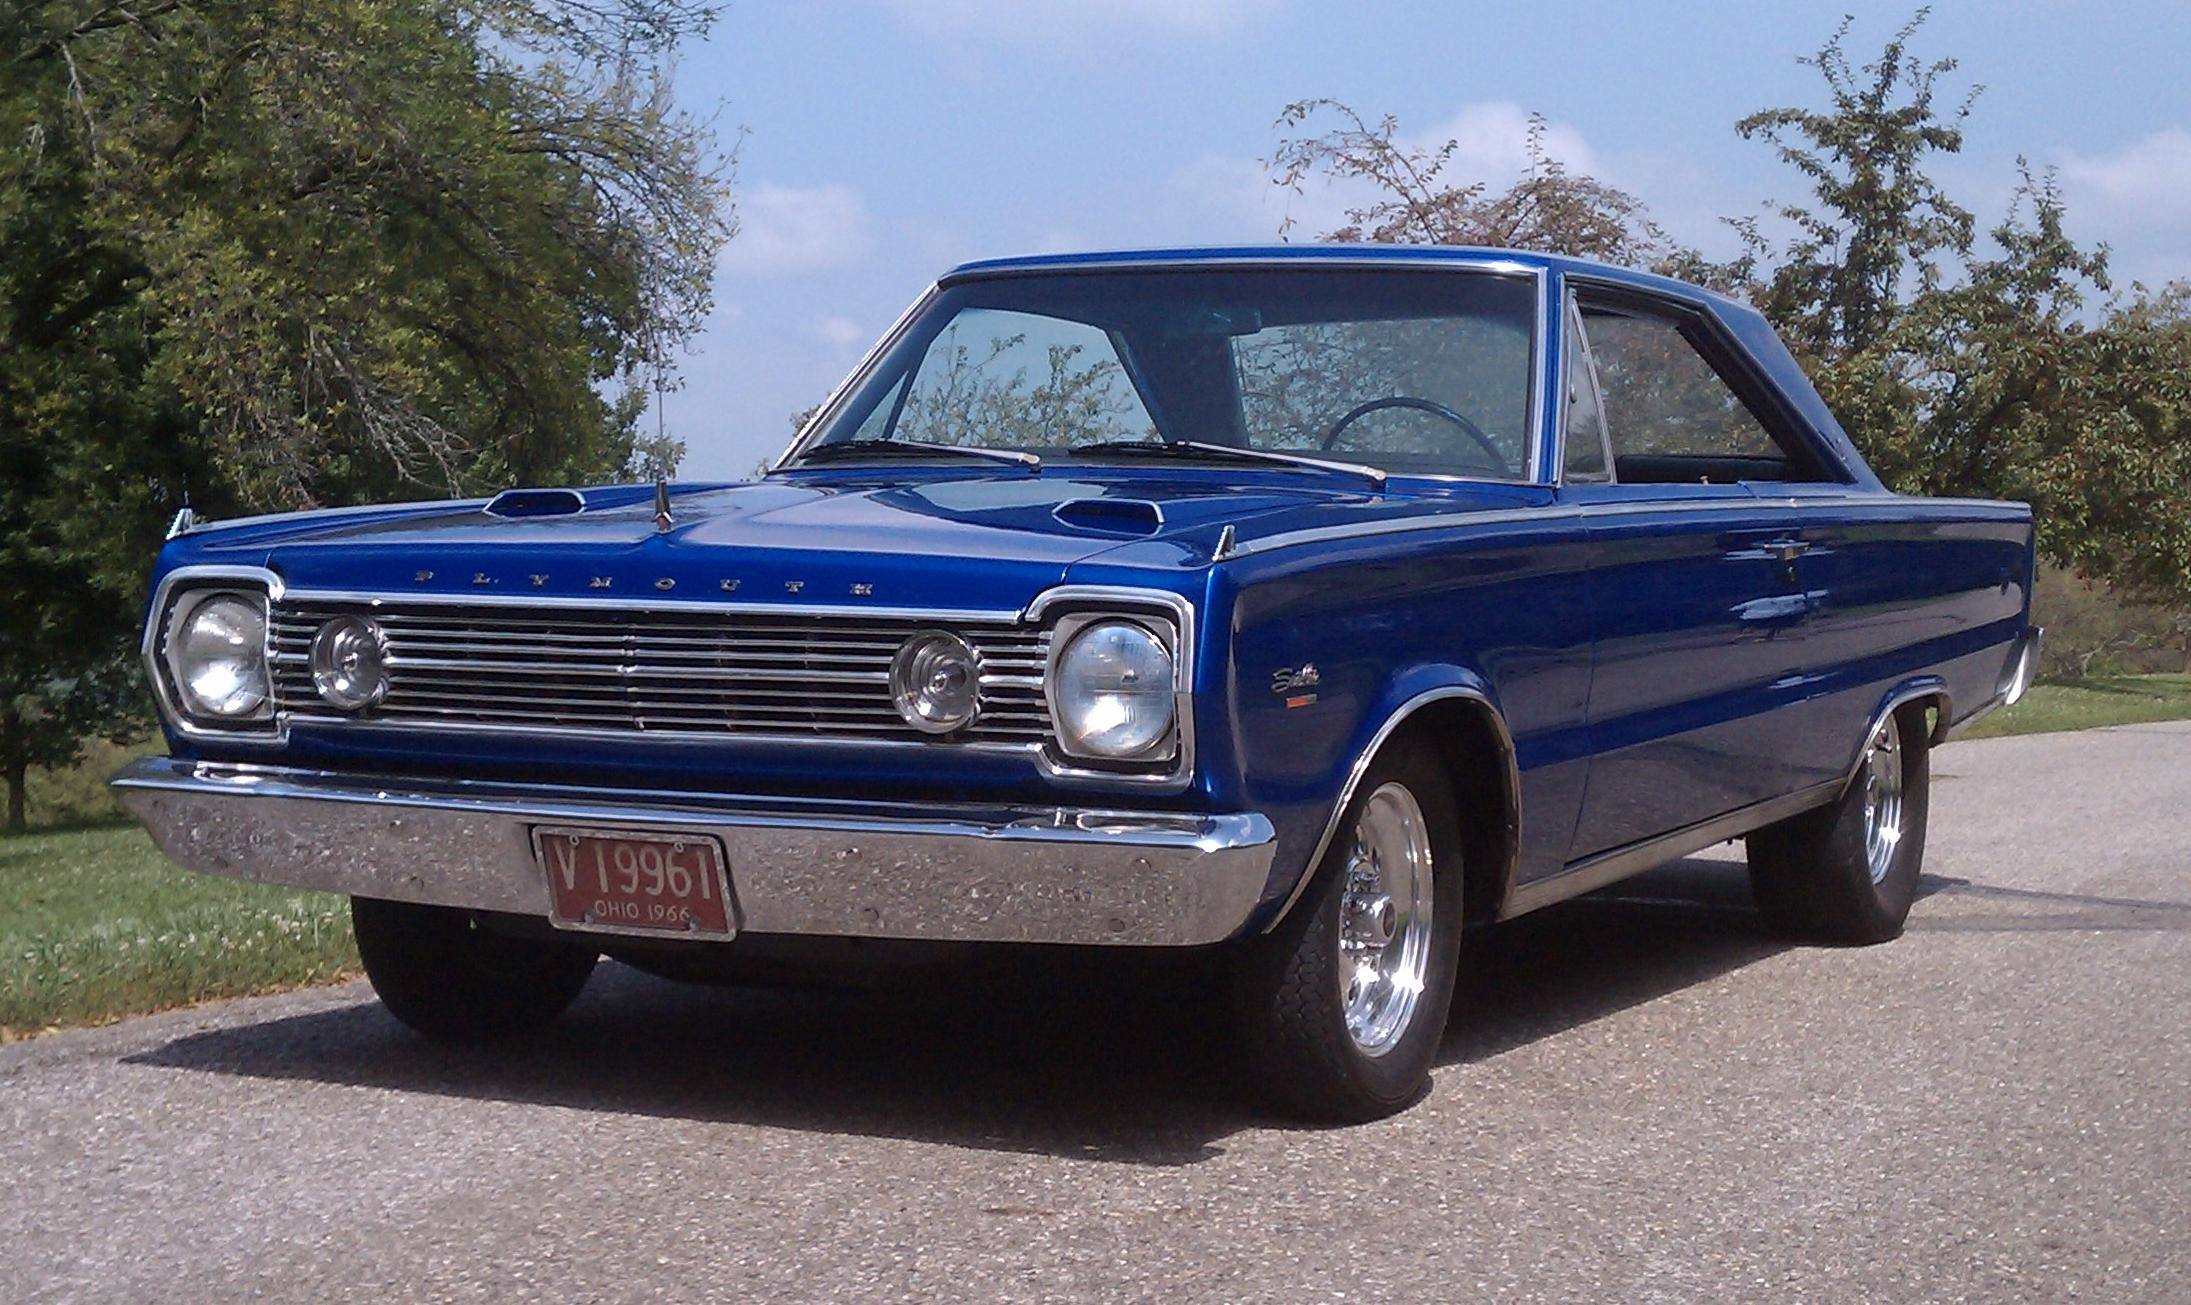 ChustinChay 1966 Plymouth Satellite